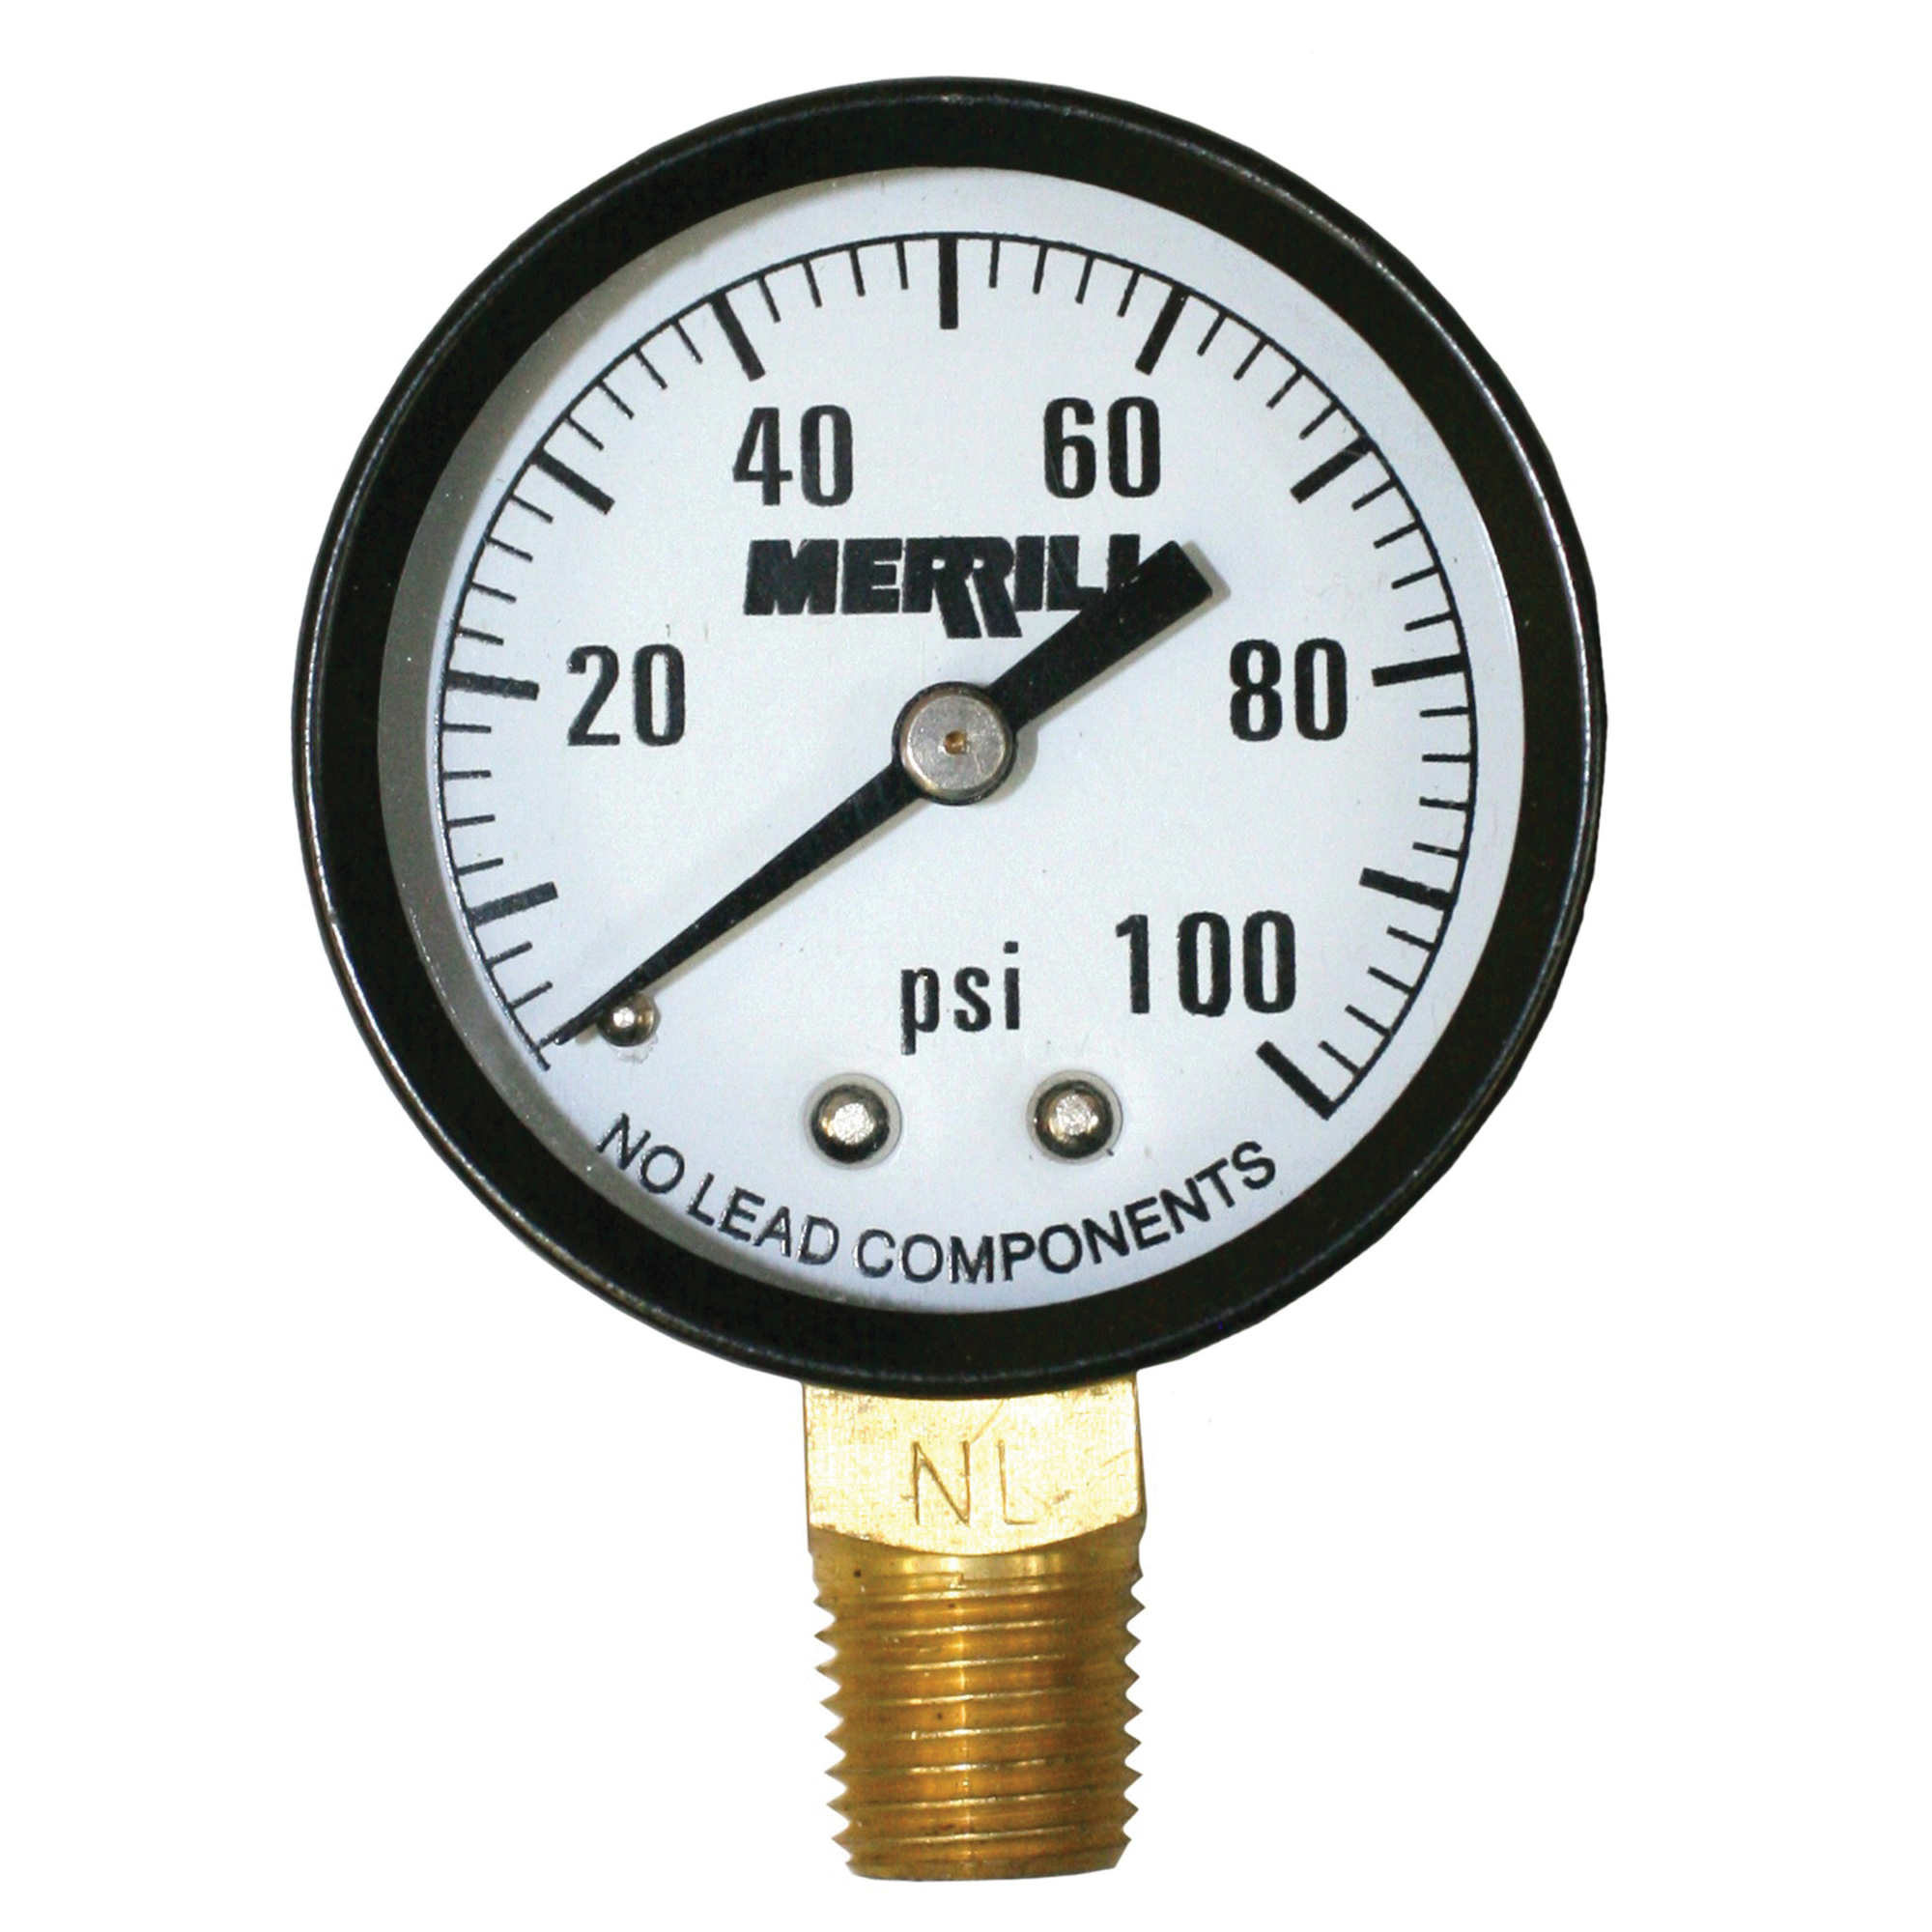 Merrill PGNL100 Pressure Gauge, 2 in Dial, 0 to 100 psi, 1/4 in MNPT Lower Mount, /-3-2-3% Accuracy, Liquid Filled: No